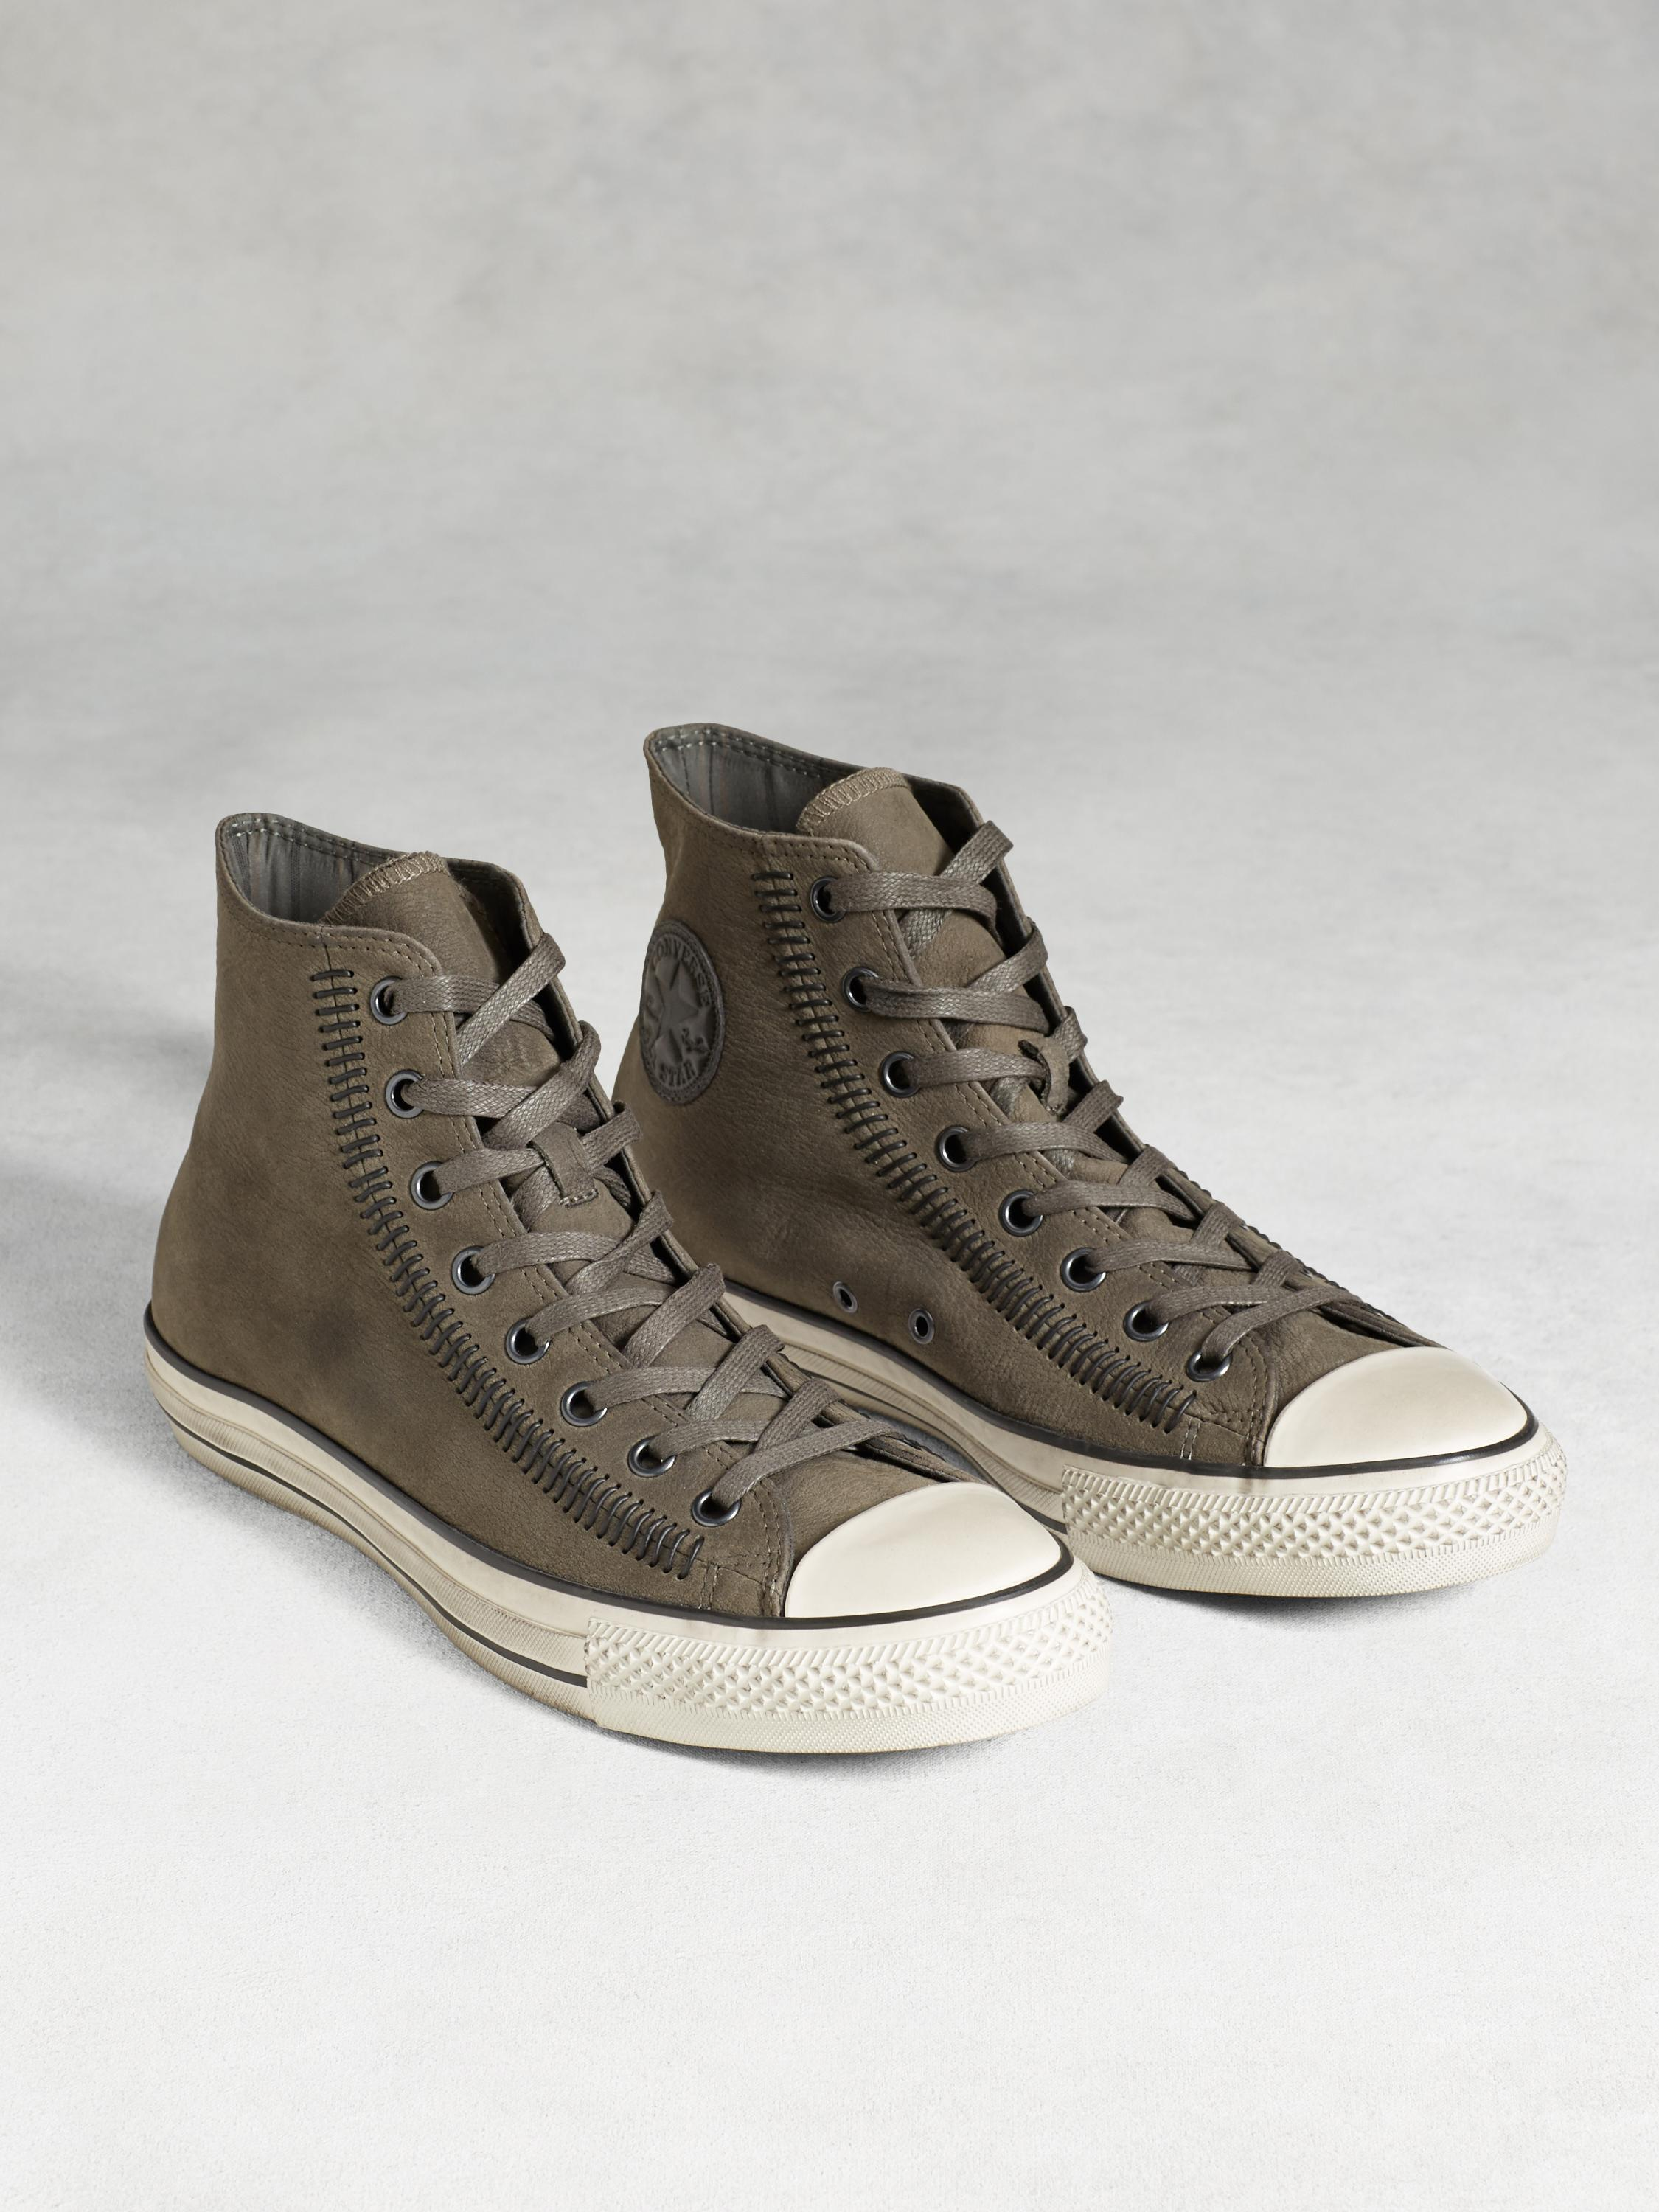 Chuck Taylor All Star Artisan Stitch High Top